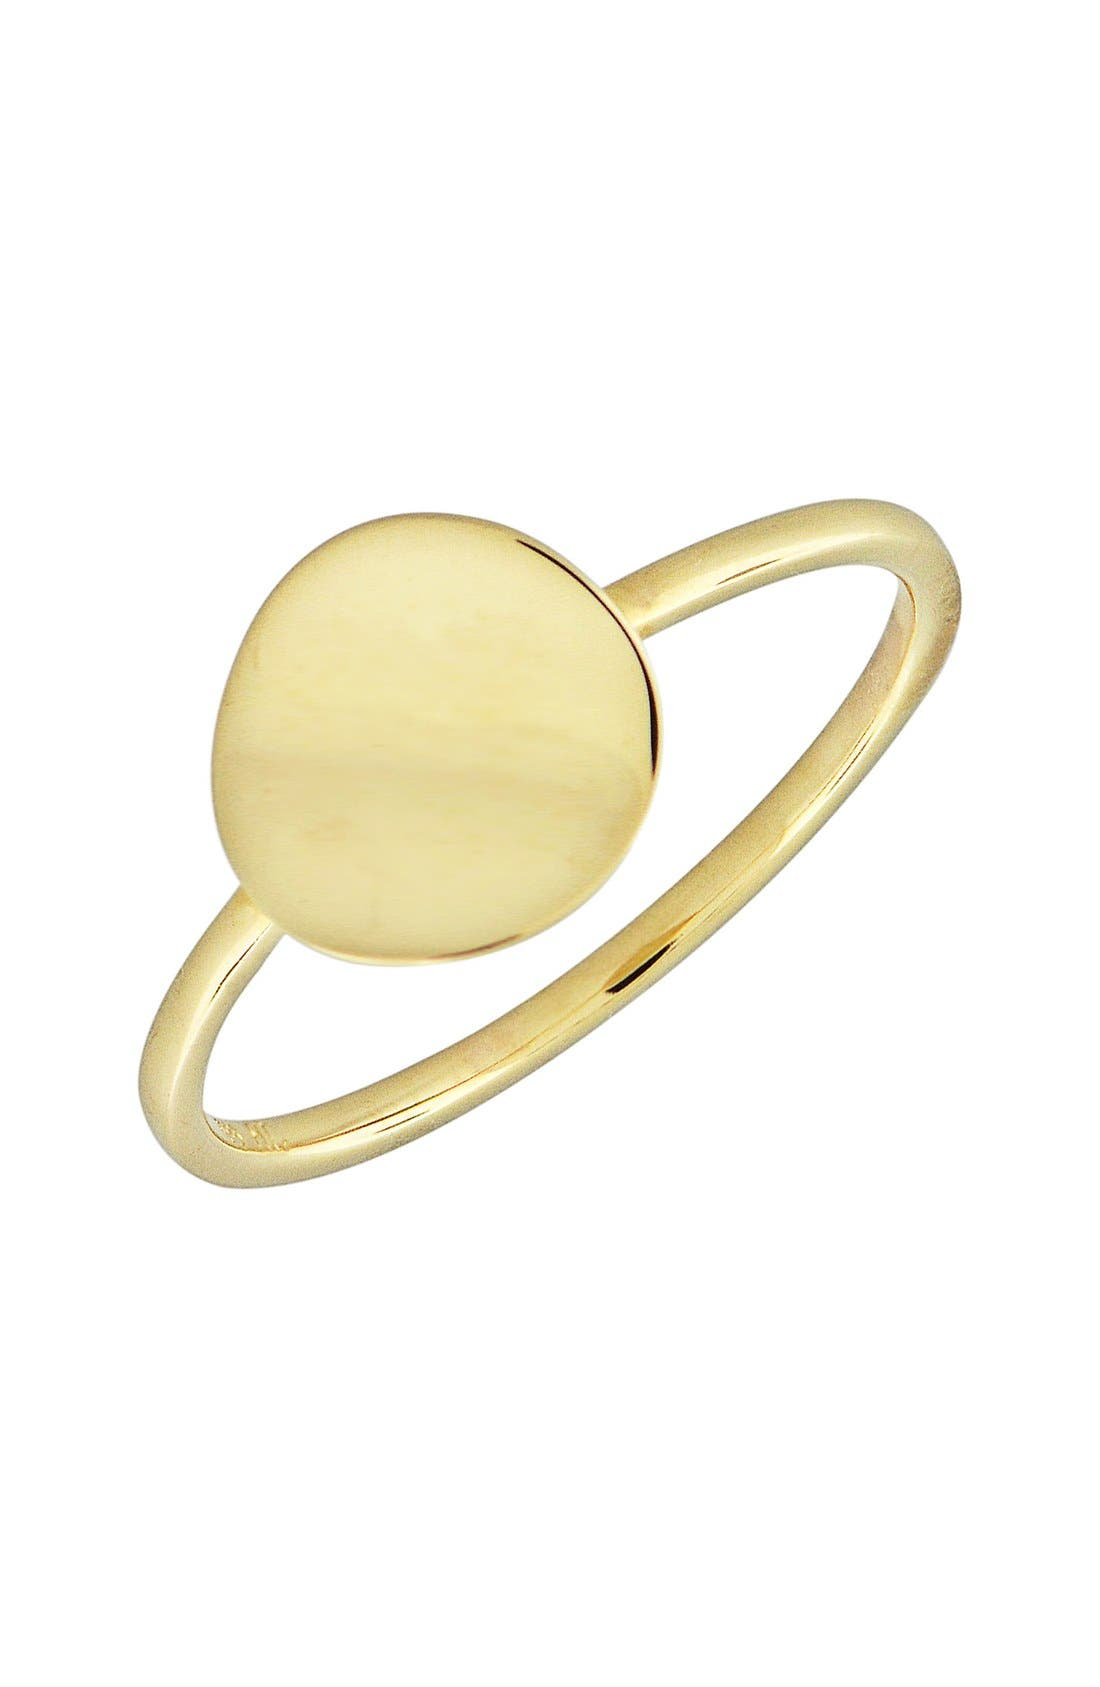 Main Image - Bony Levy 14k Gold Concave Disc Ring (Nordstrom Exclusive)